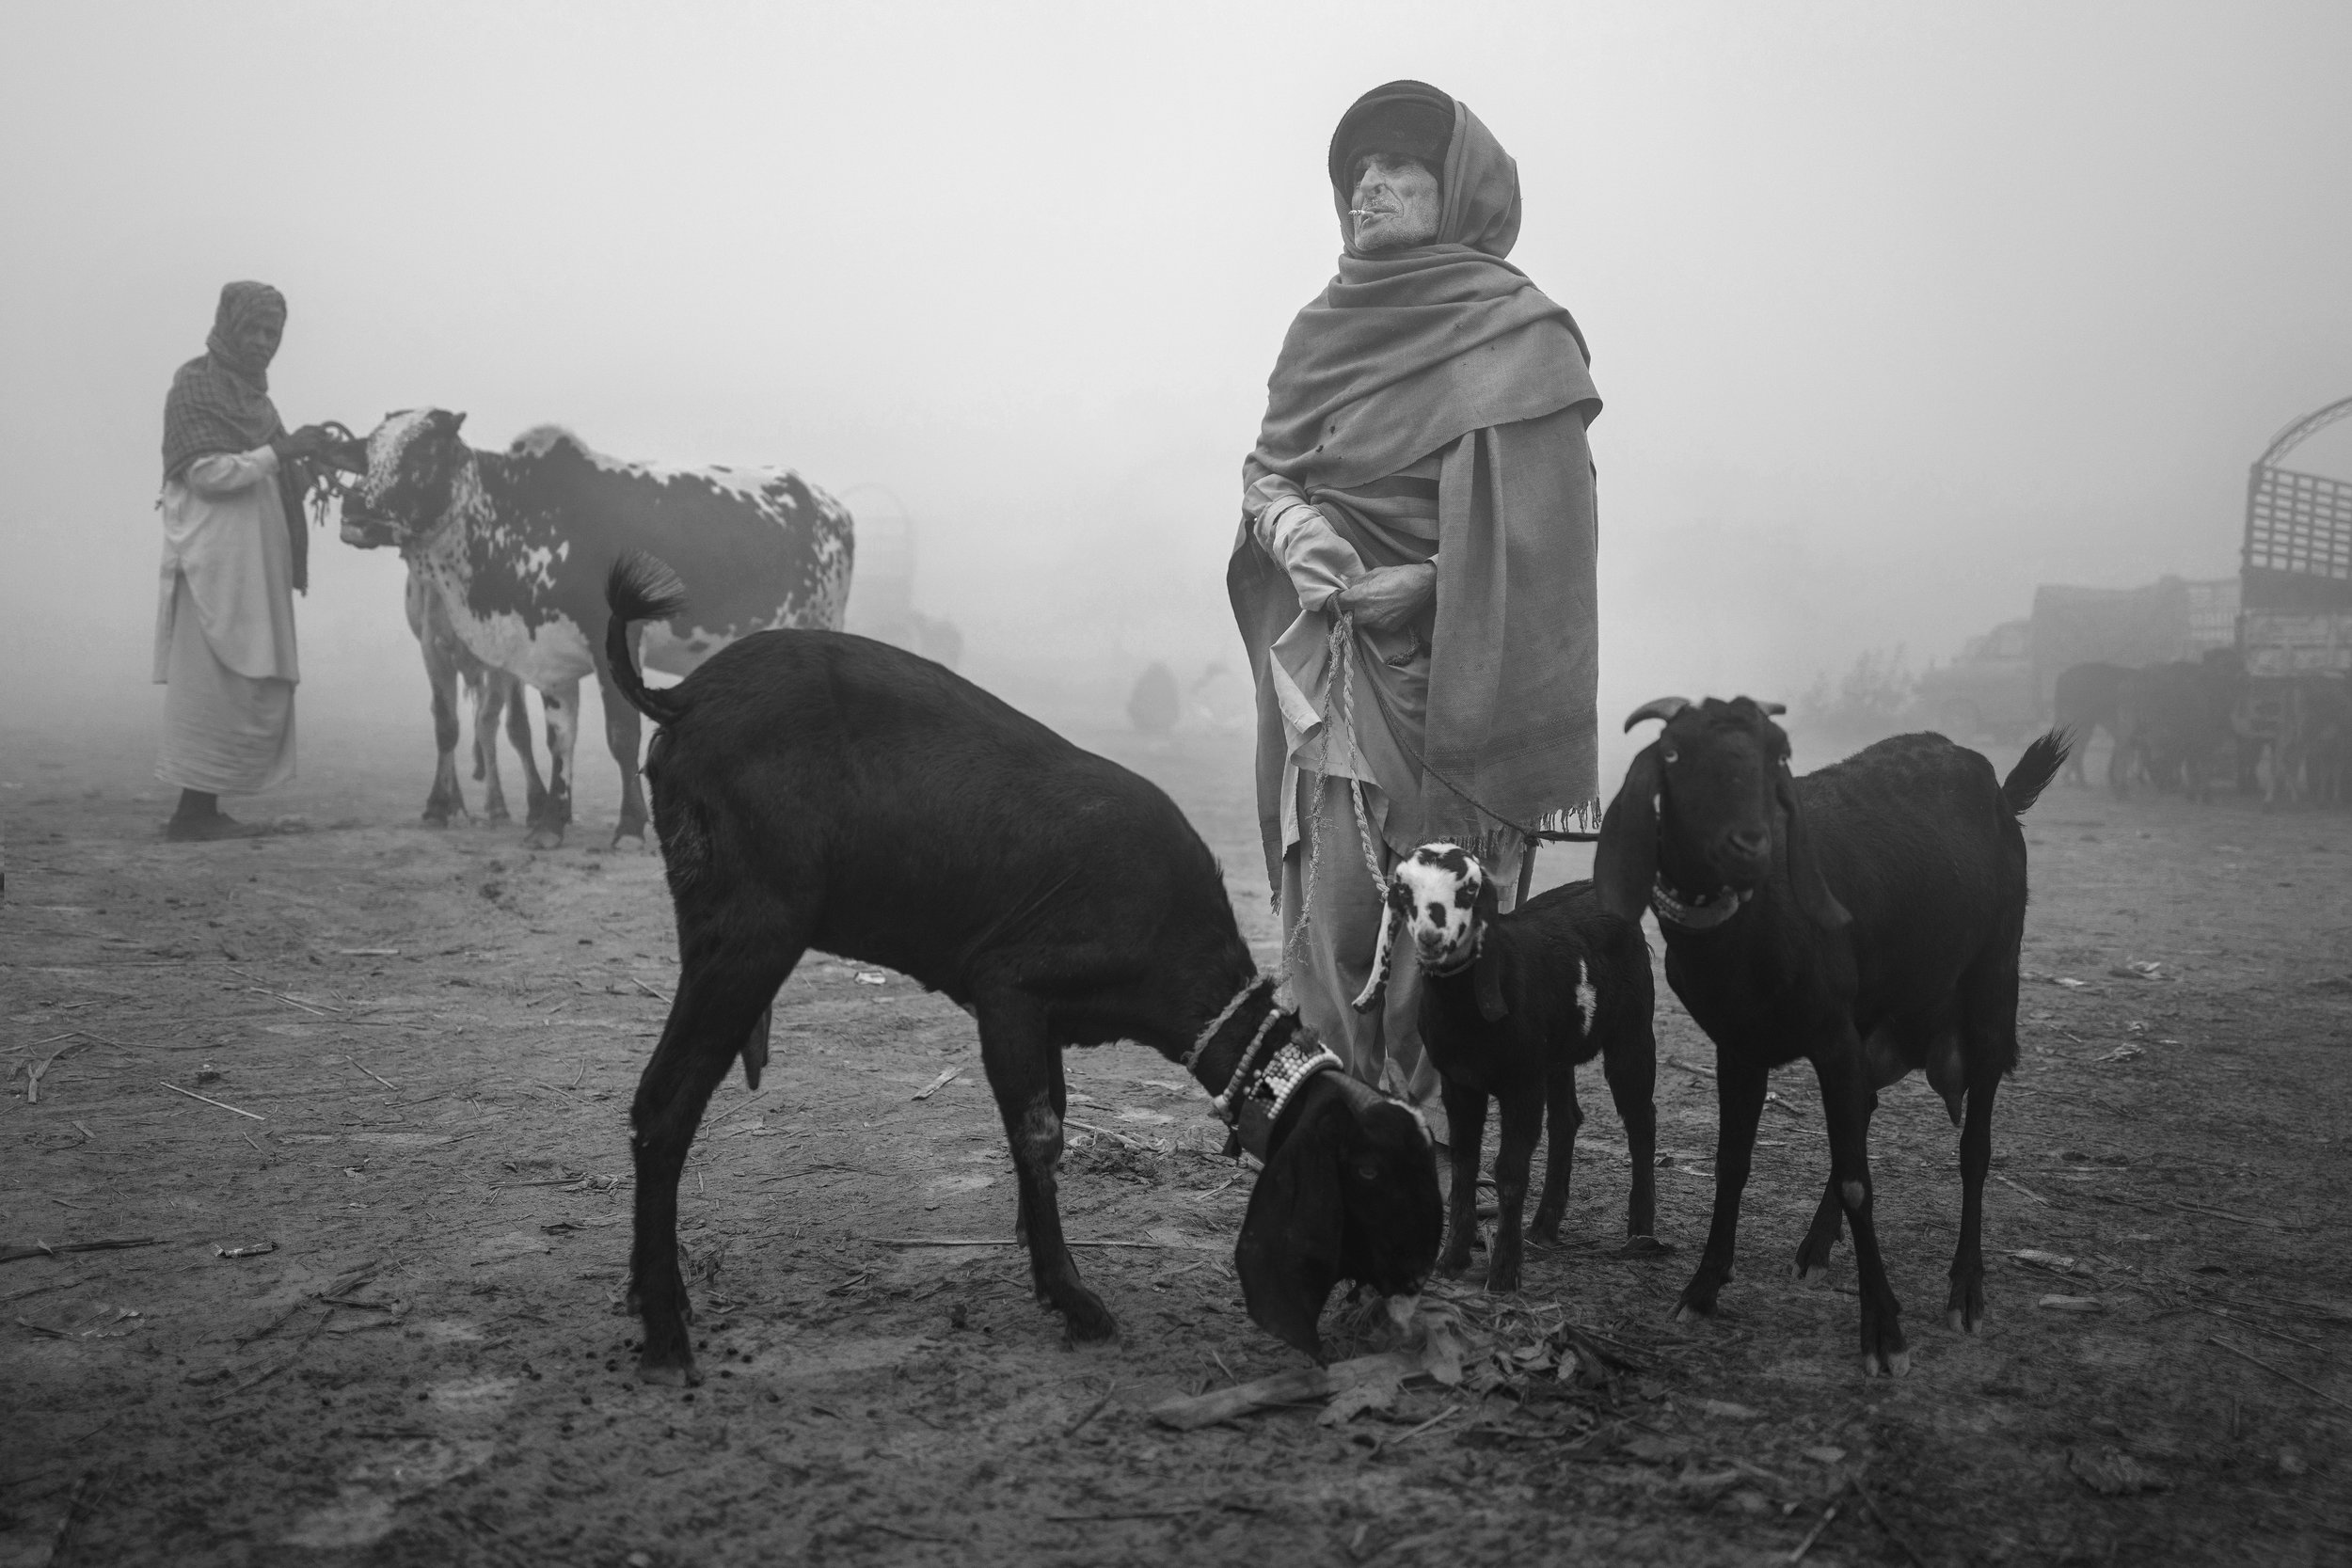 A foggy morning at the cattle market